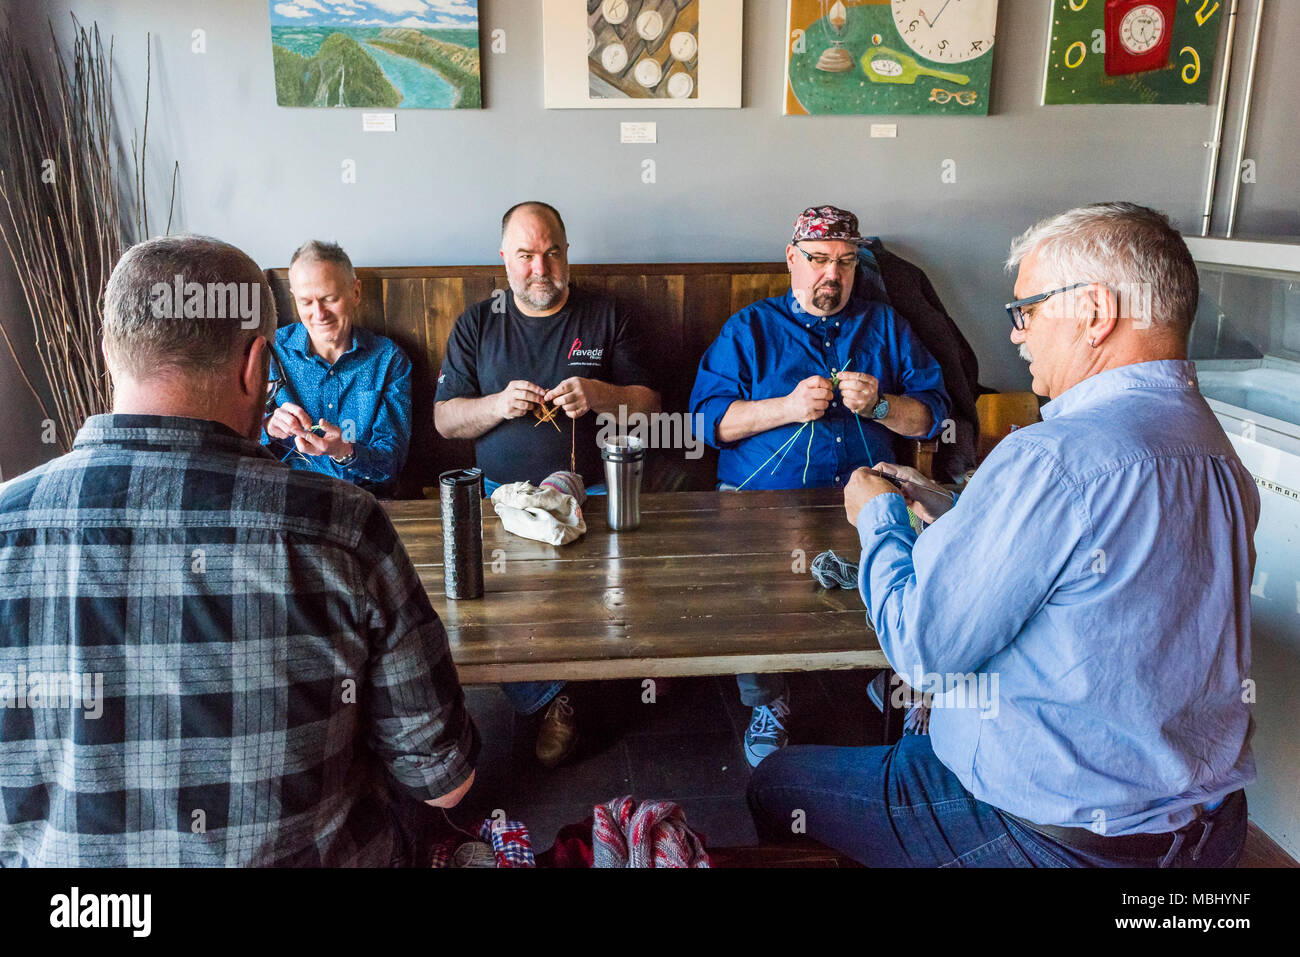 Five men knitting in an East Village Coffee Shop, Vancouver, British Columbia, Canada. - Stock Image